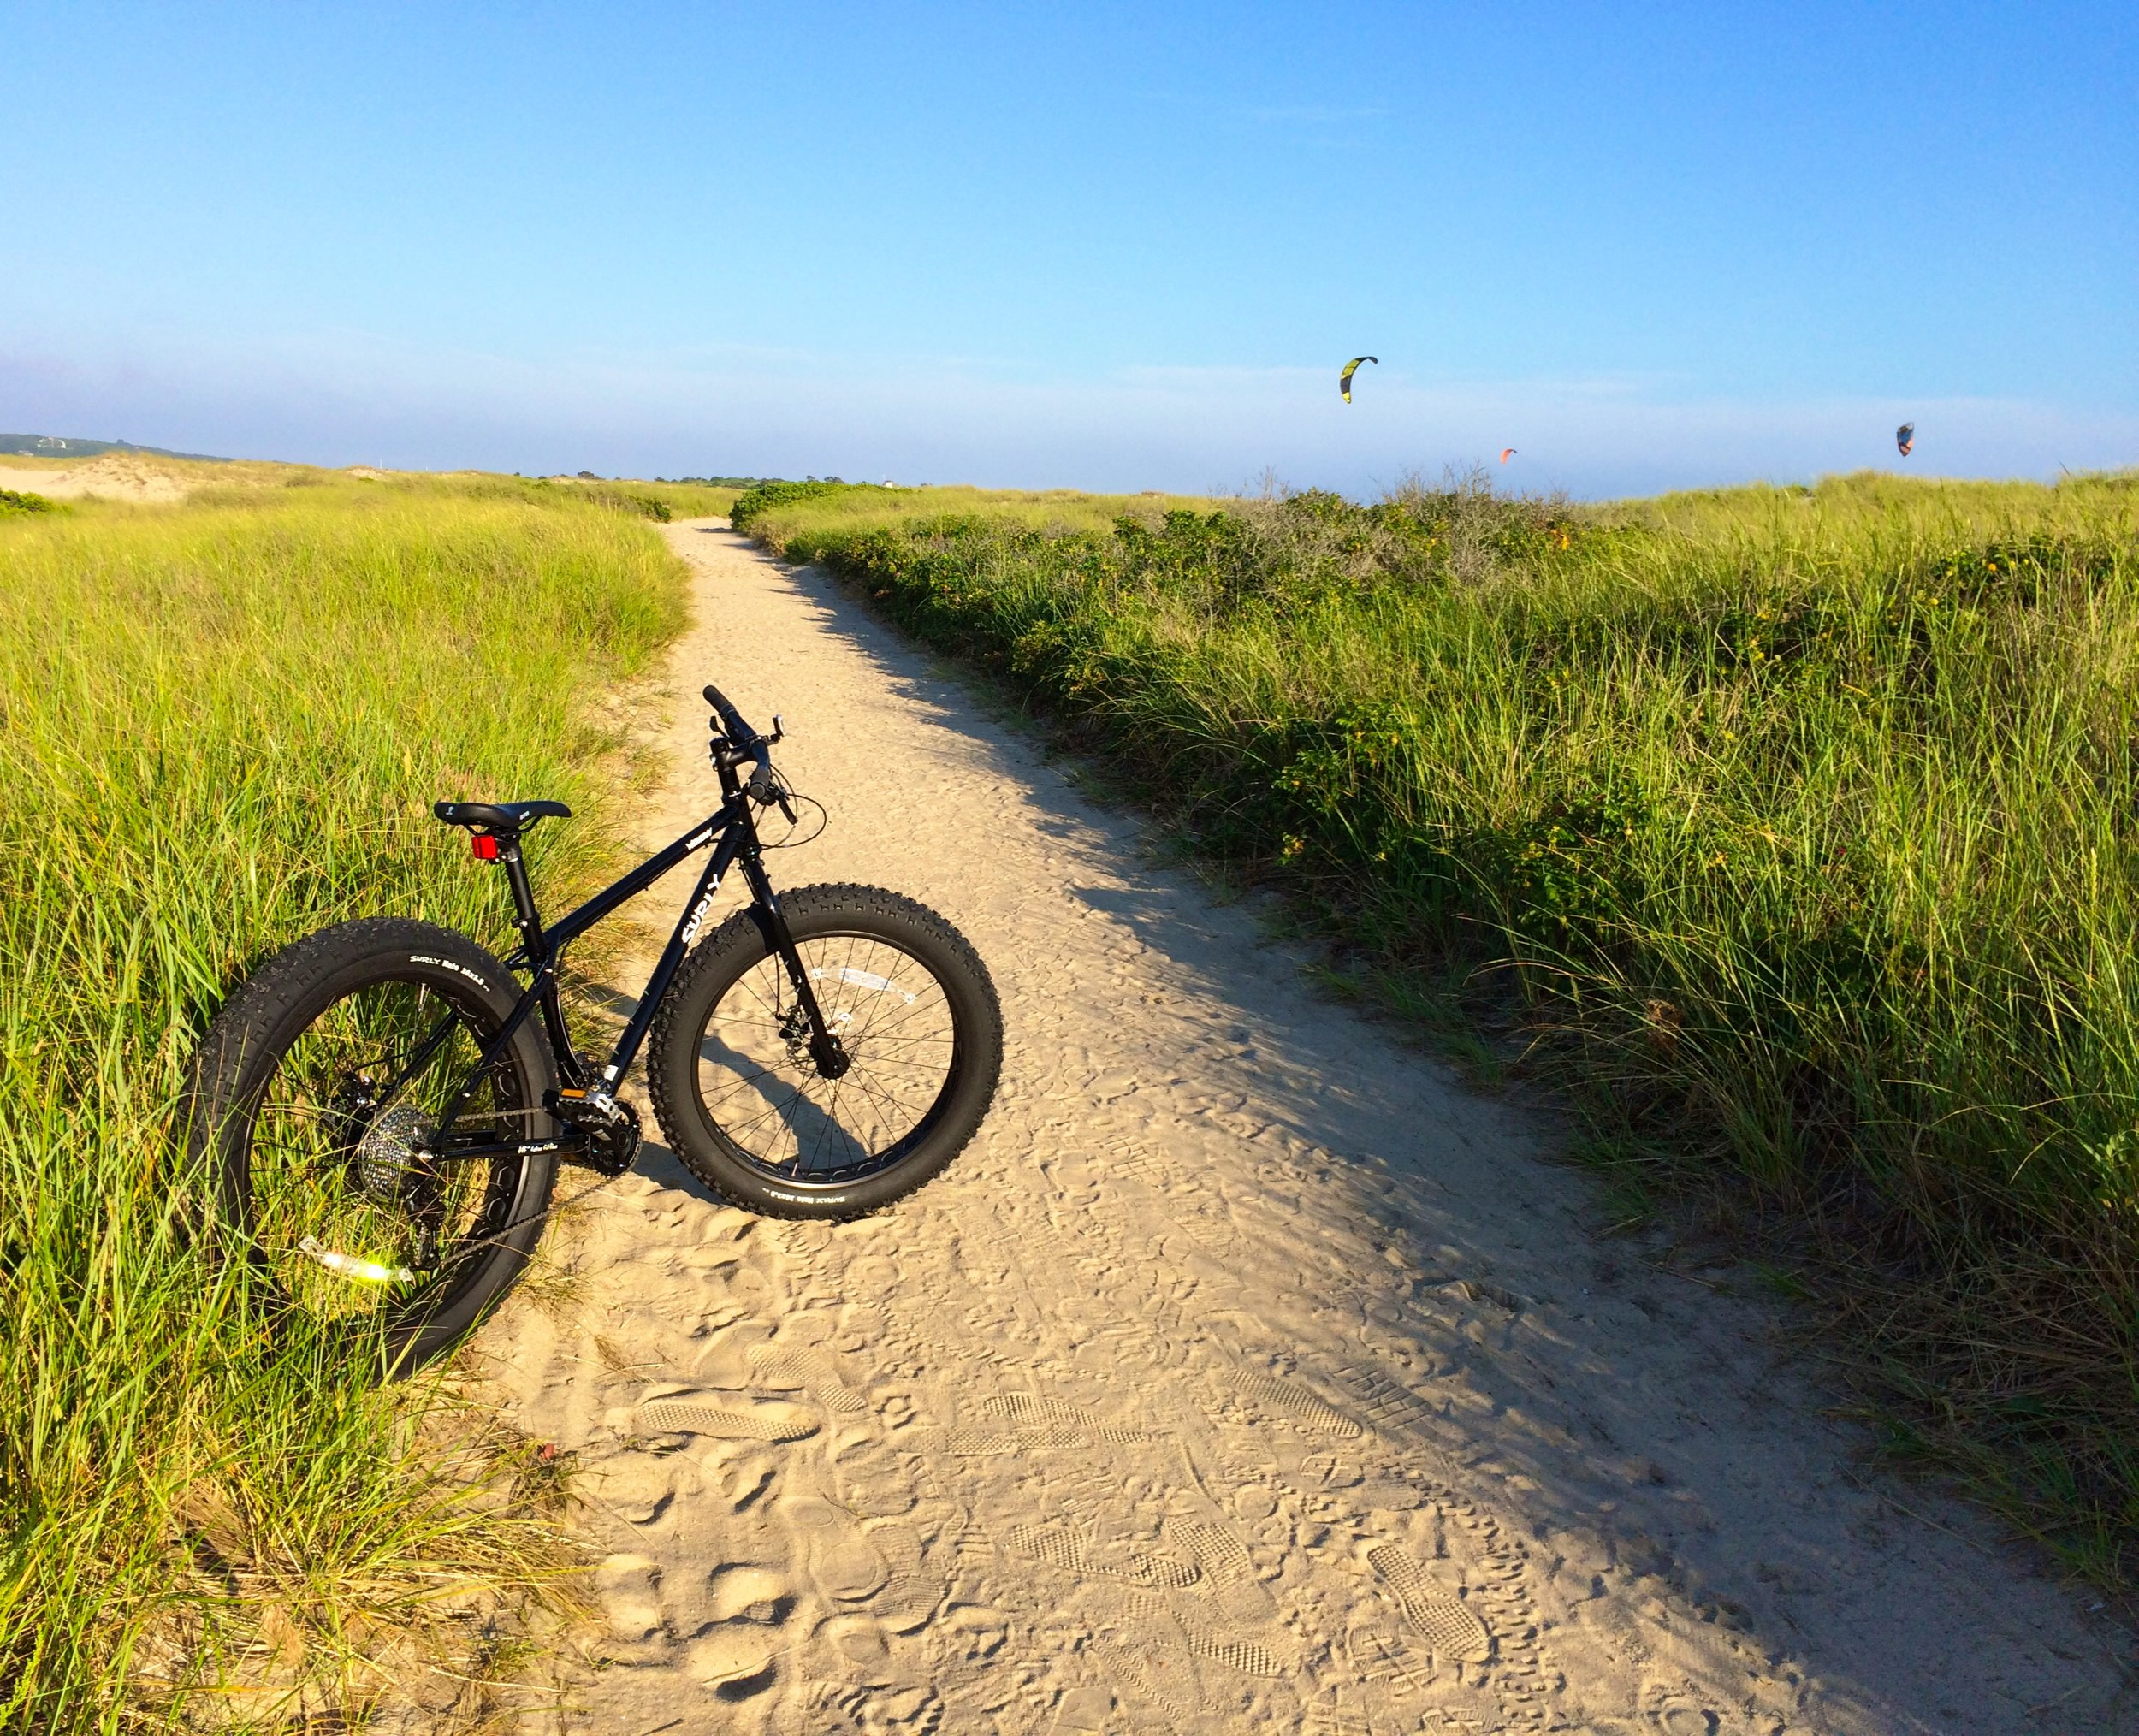 our Surly FatBike on the beach trail with Kiteboarders in the back ground